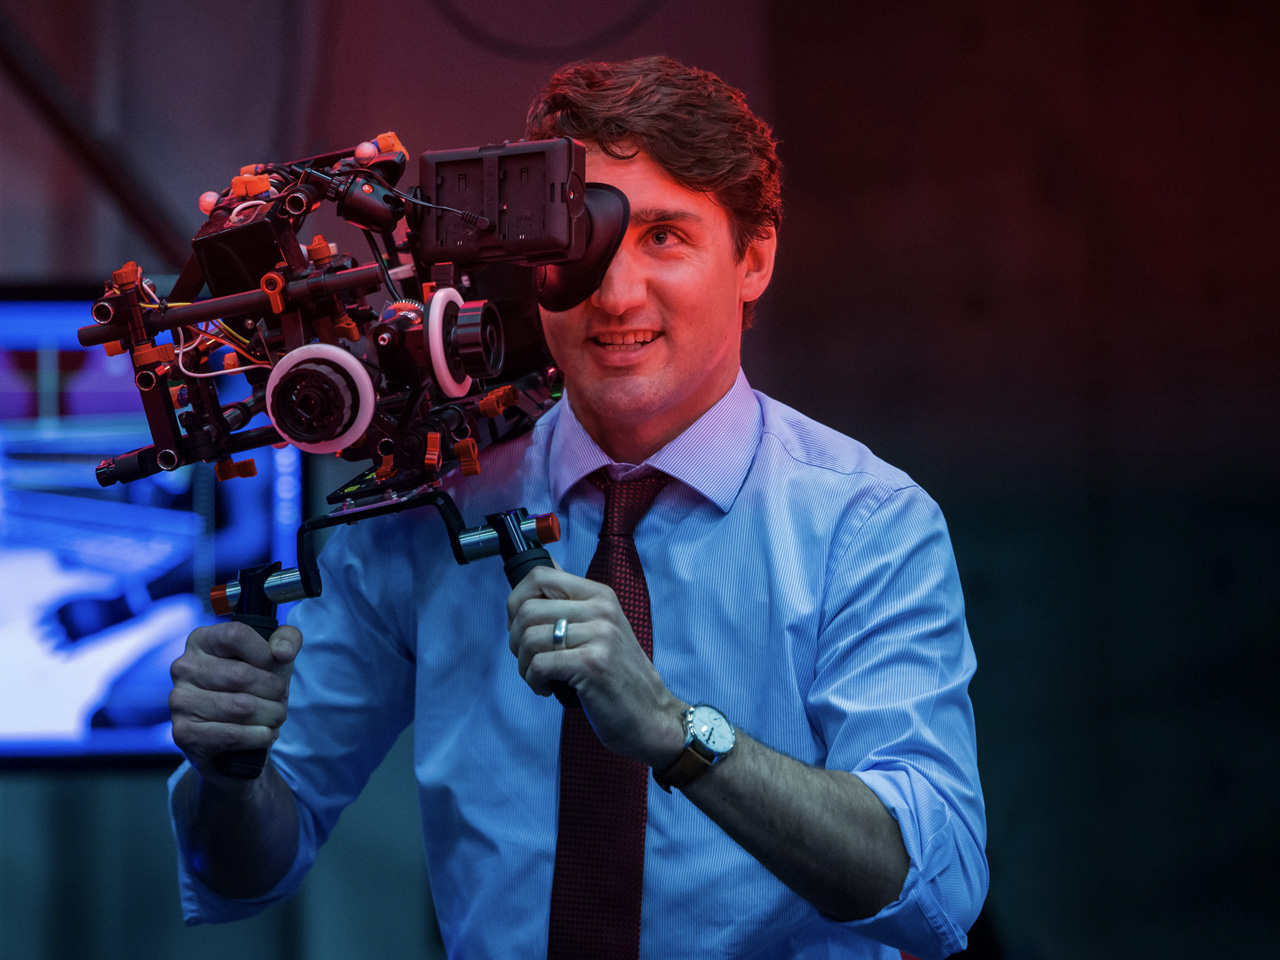 SHAPE camera support rig -Justin-Trudeau-hand6-1280X960